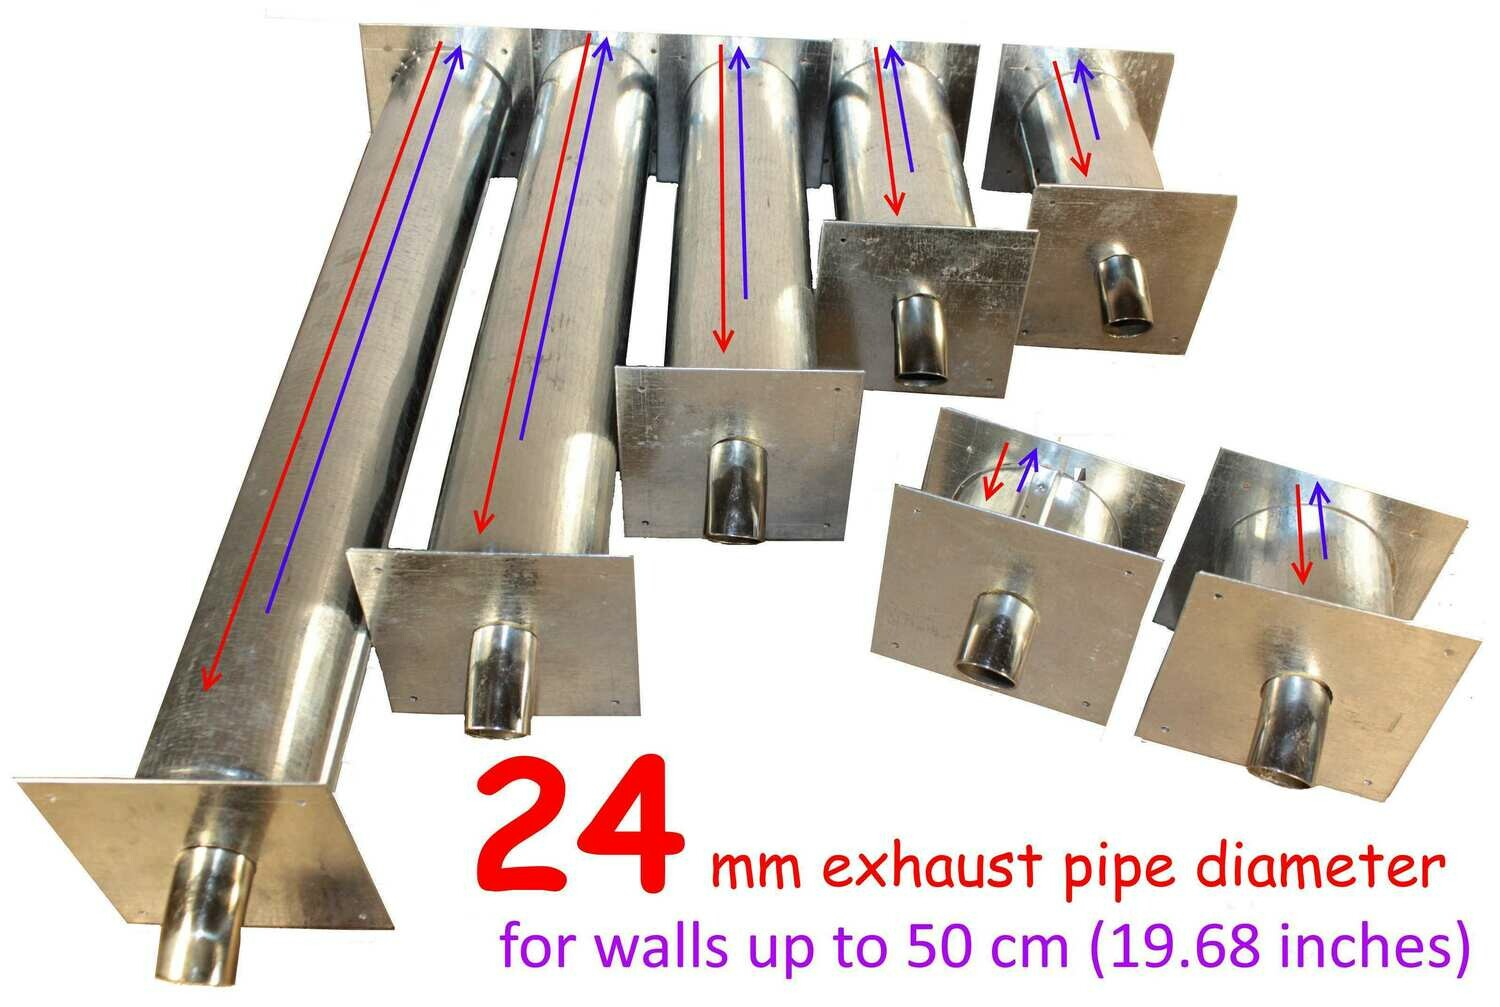 Exhaust thru wall outlet 24 mm